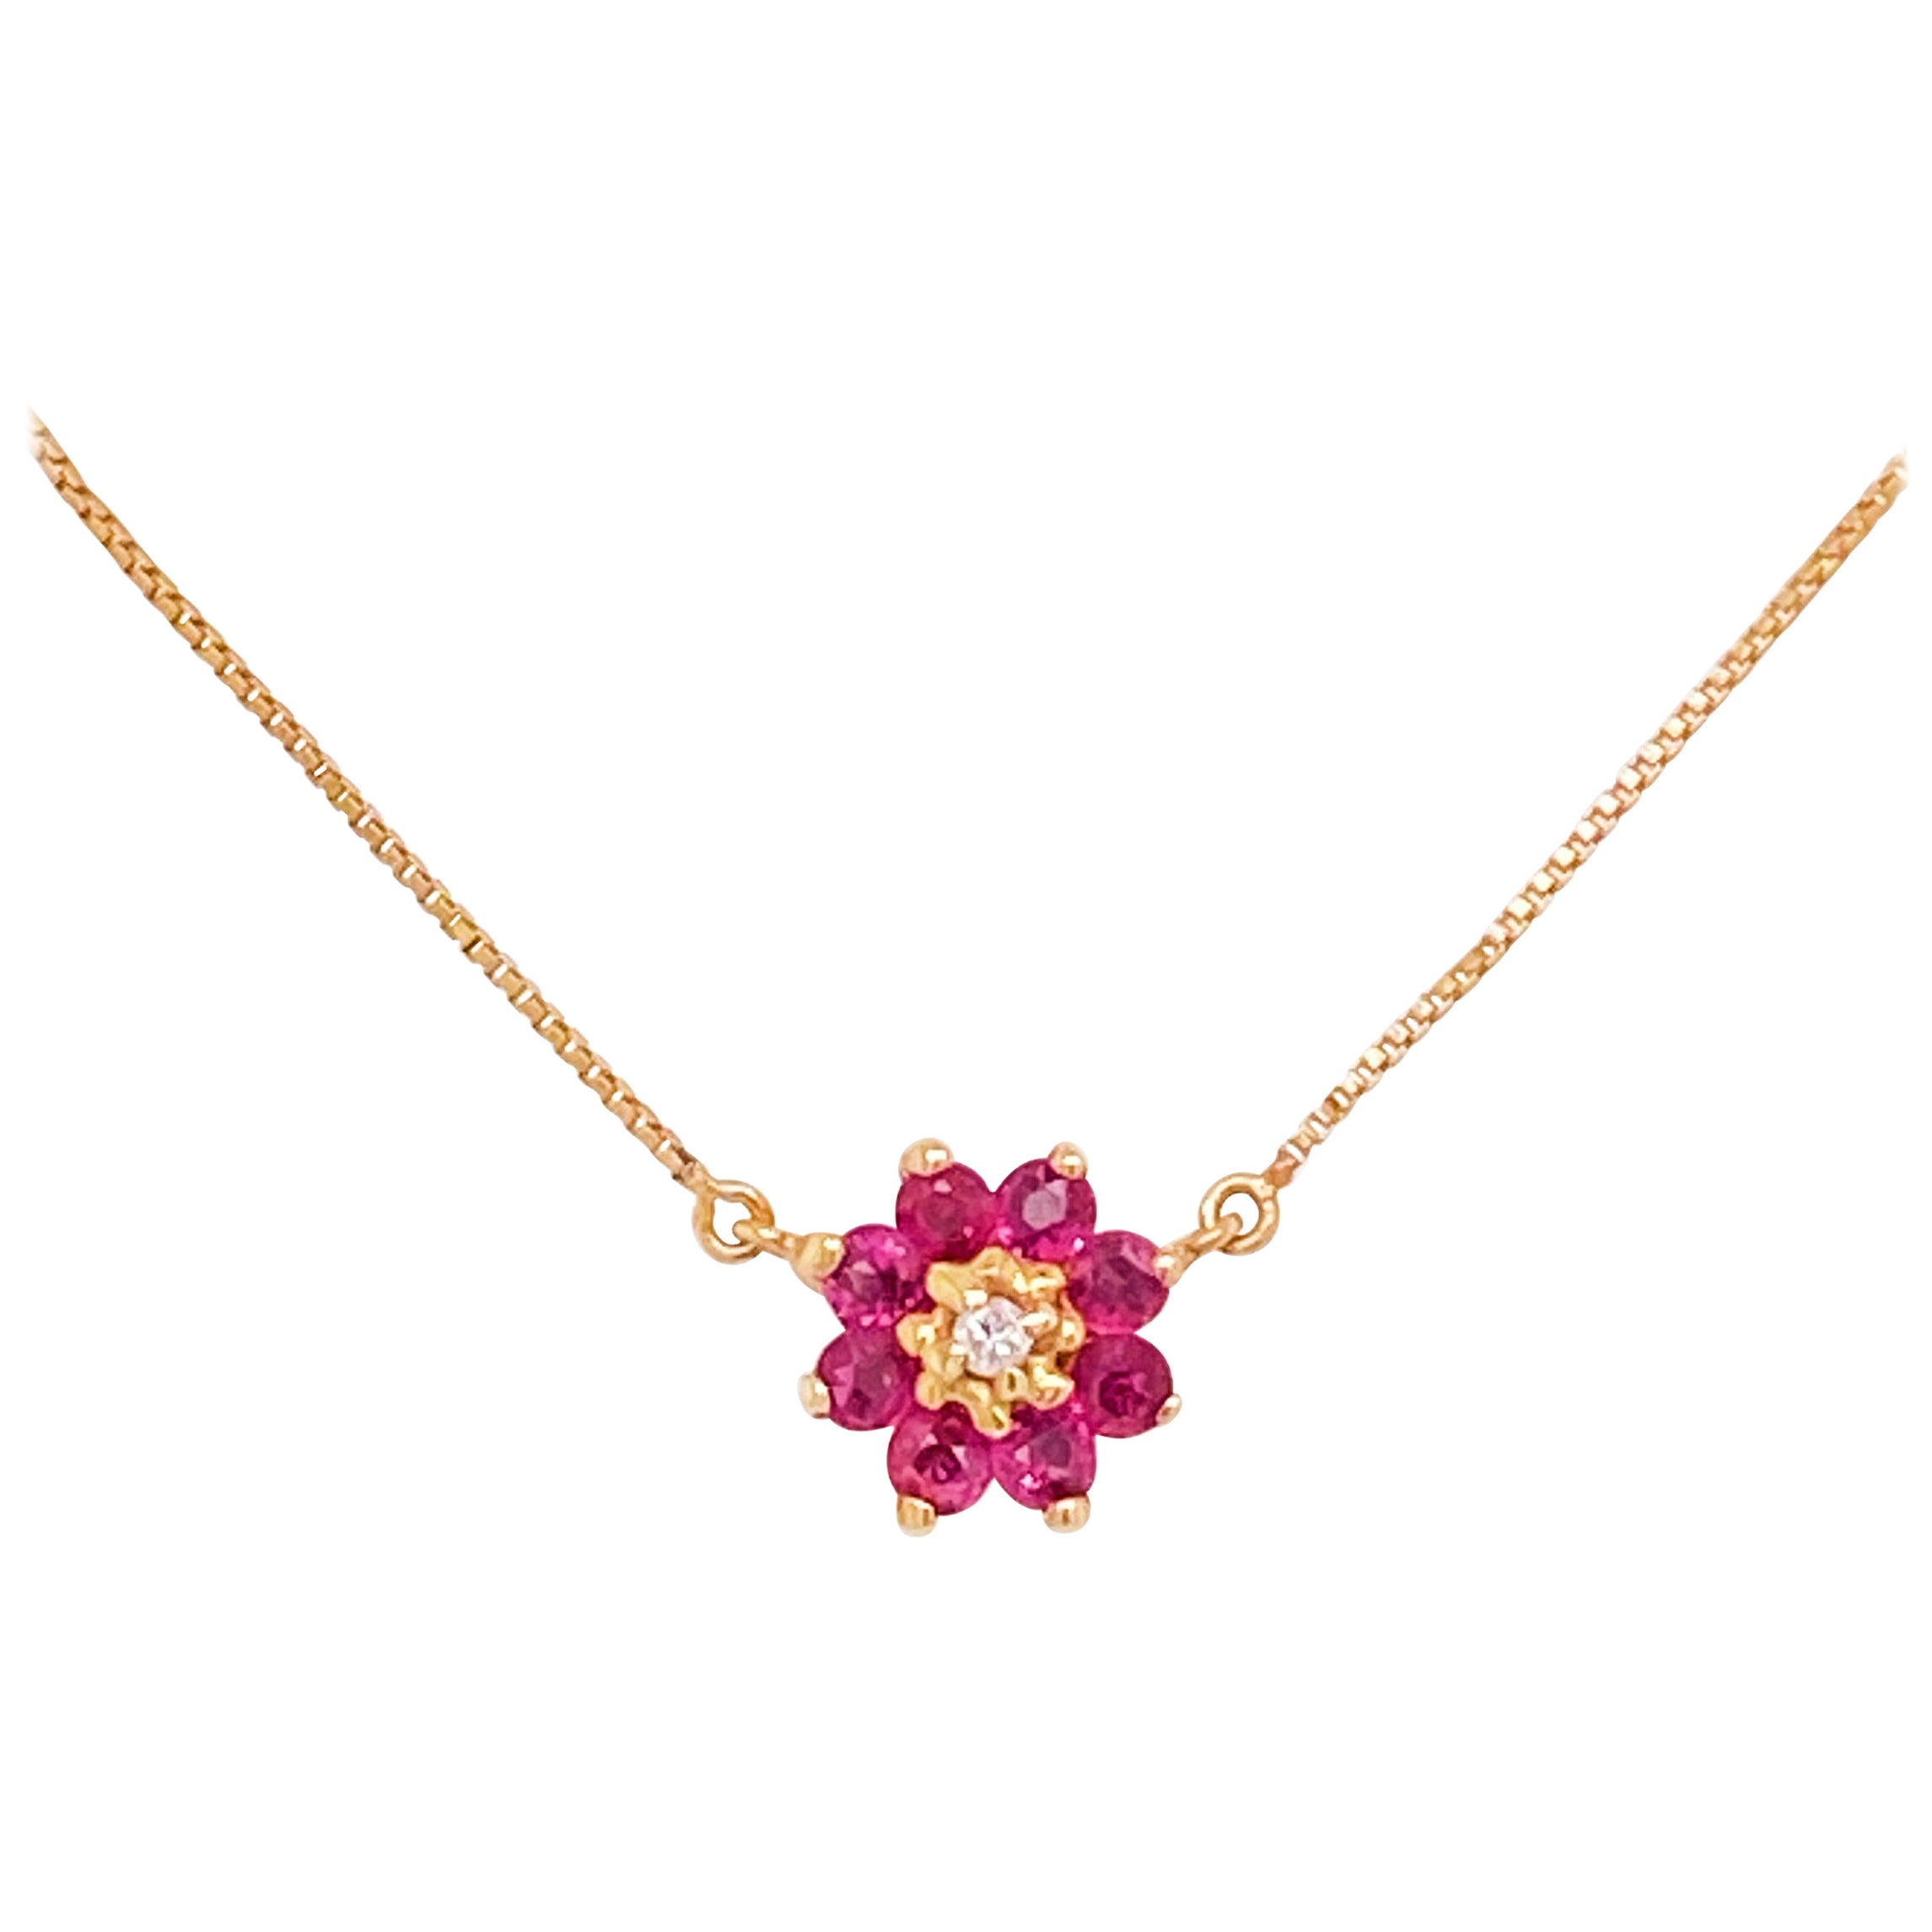 Ruby Cluster Necklace, Diamond, 14 Karat Yellow Gold, Flower Pendant, Dainty